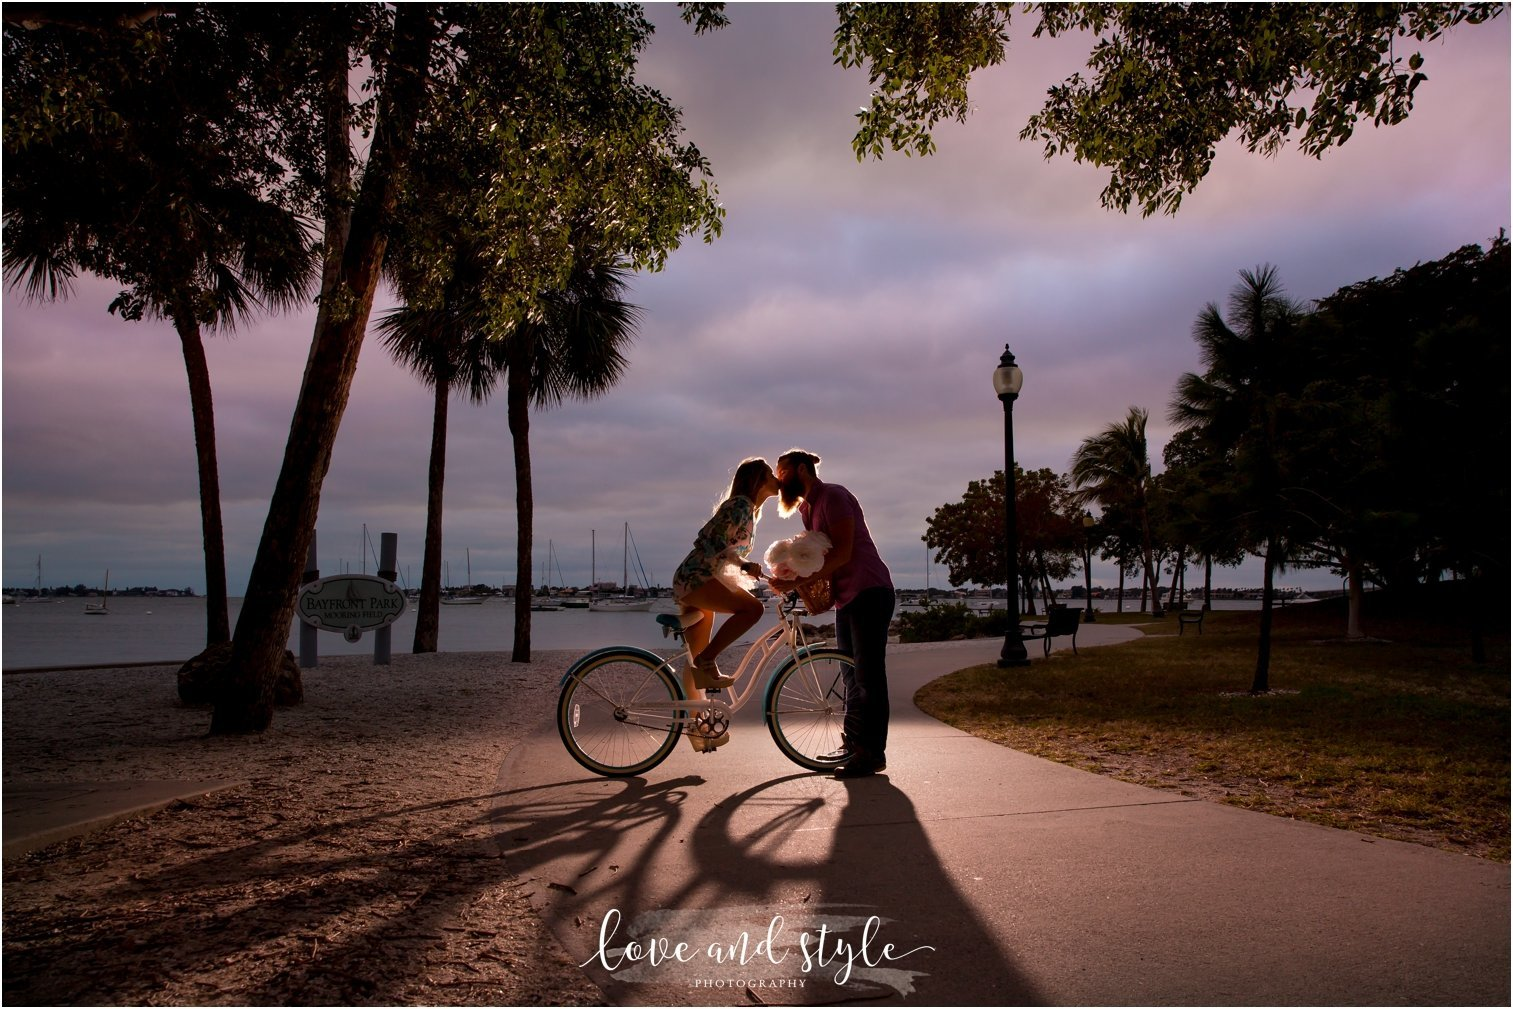 Sarasota Engagement Photography of couple kissing on a blue beach cruiser in Bayfront Park at sunset